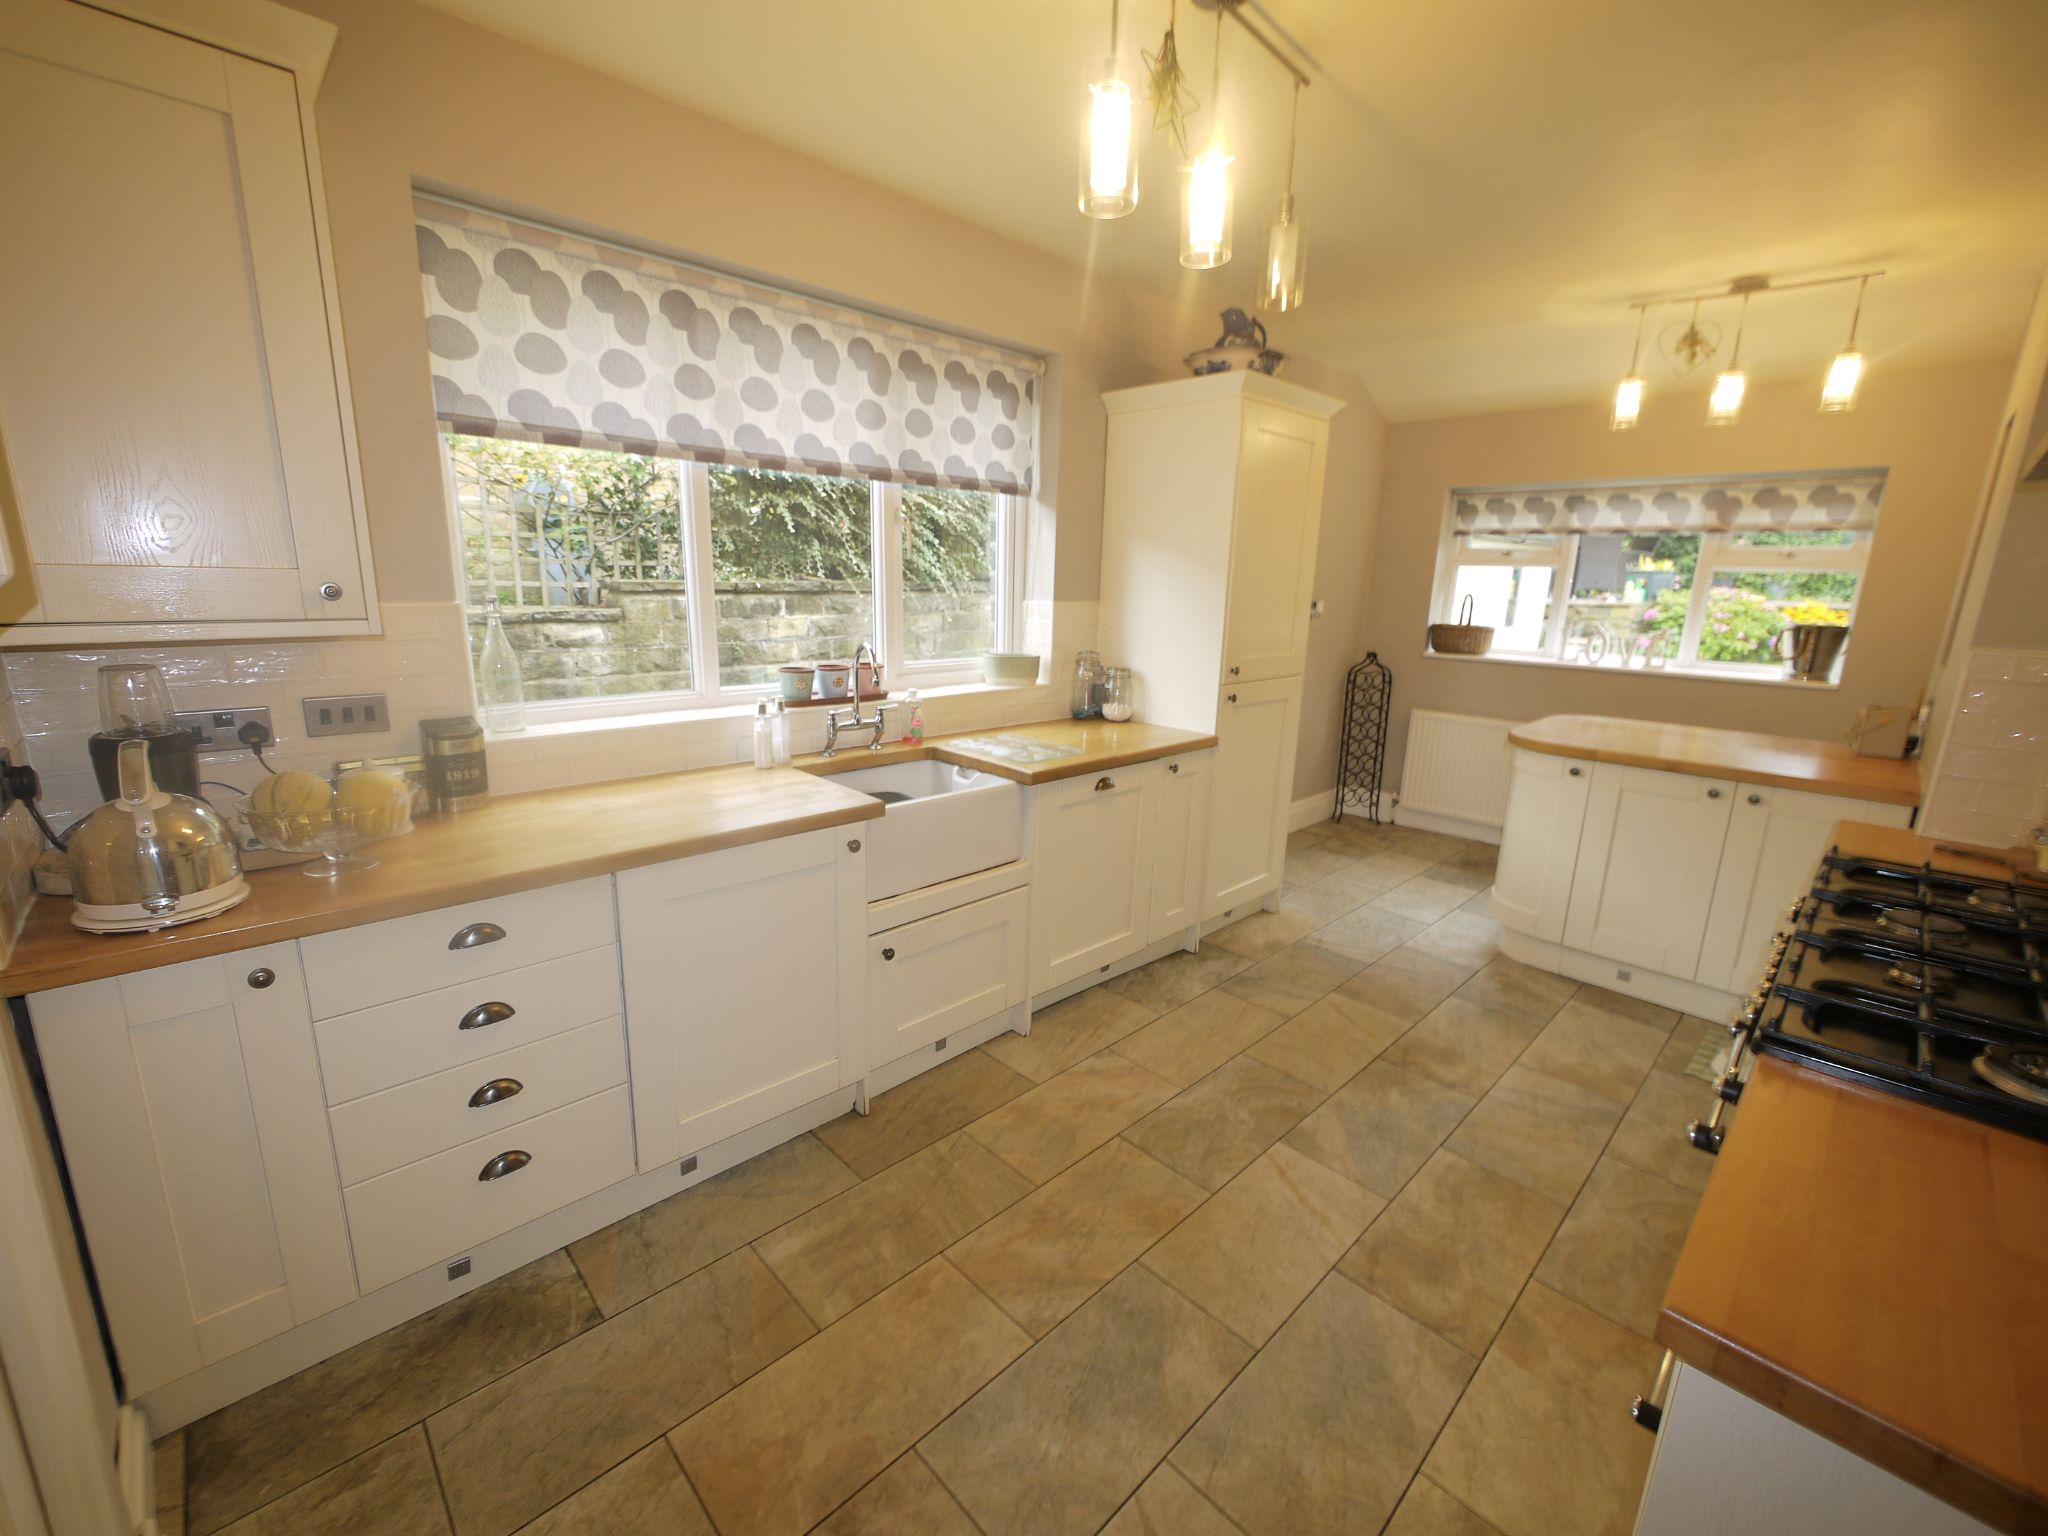 4 bedroom semi-detached house SSTC in Halifax - Kitchen 1.